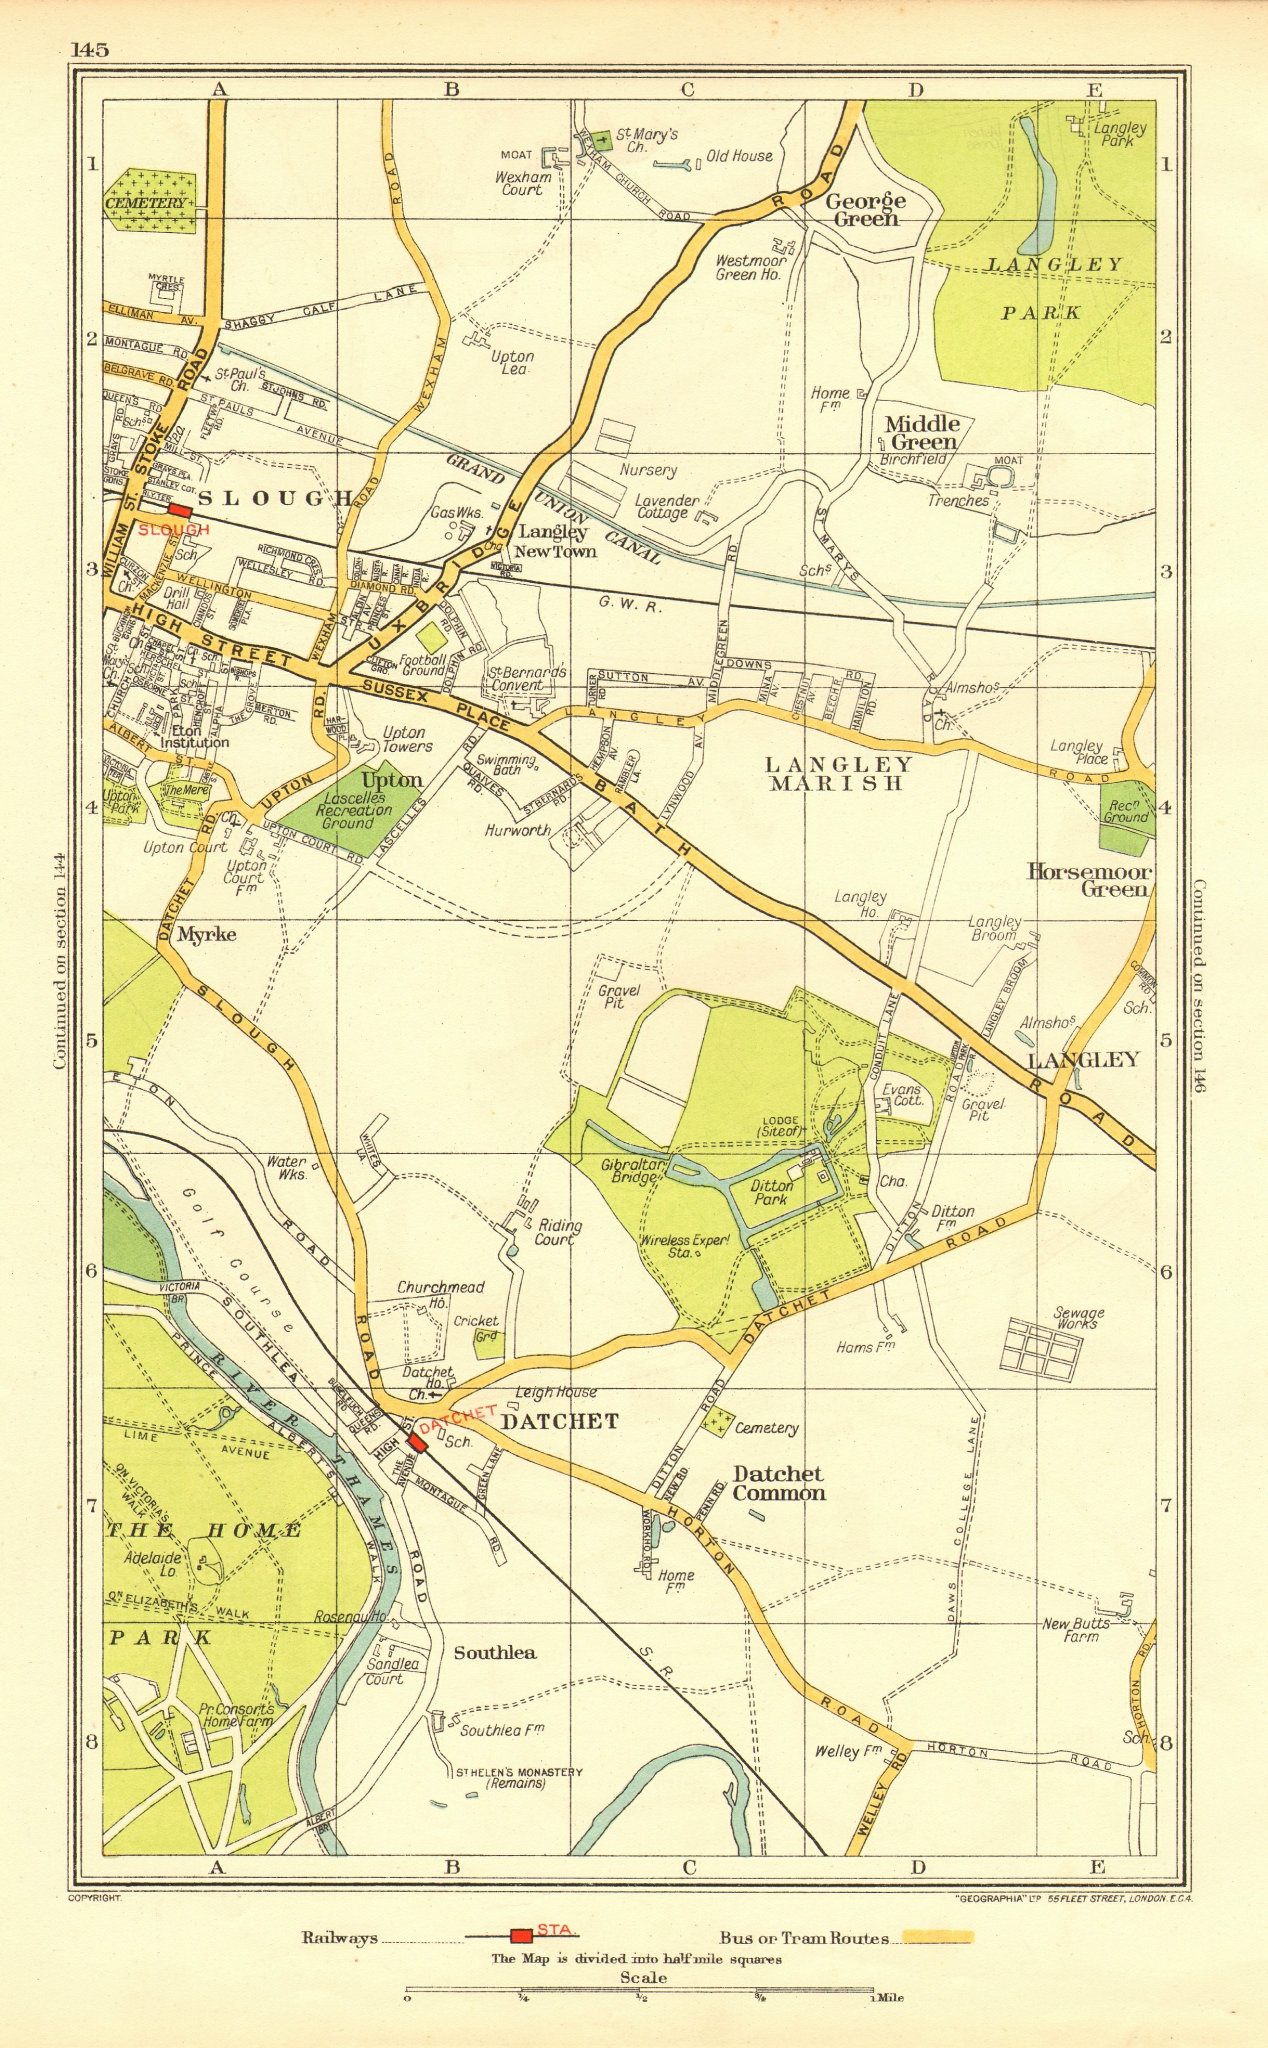 Associate Product SLOUGH. Windsor Datchet Datchet Common Langley George Green 1937 old map